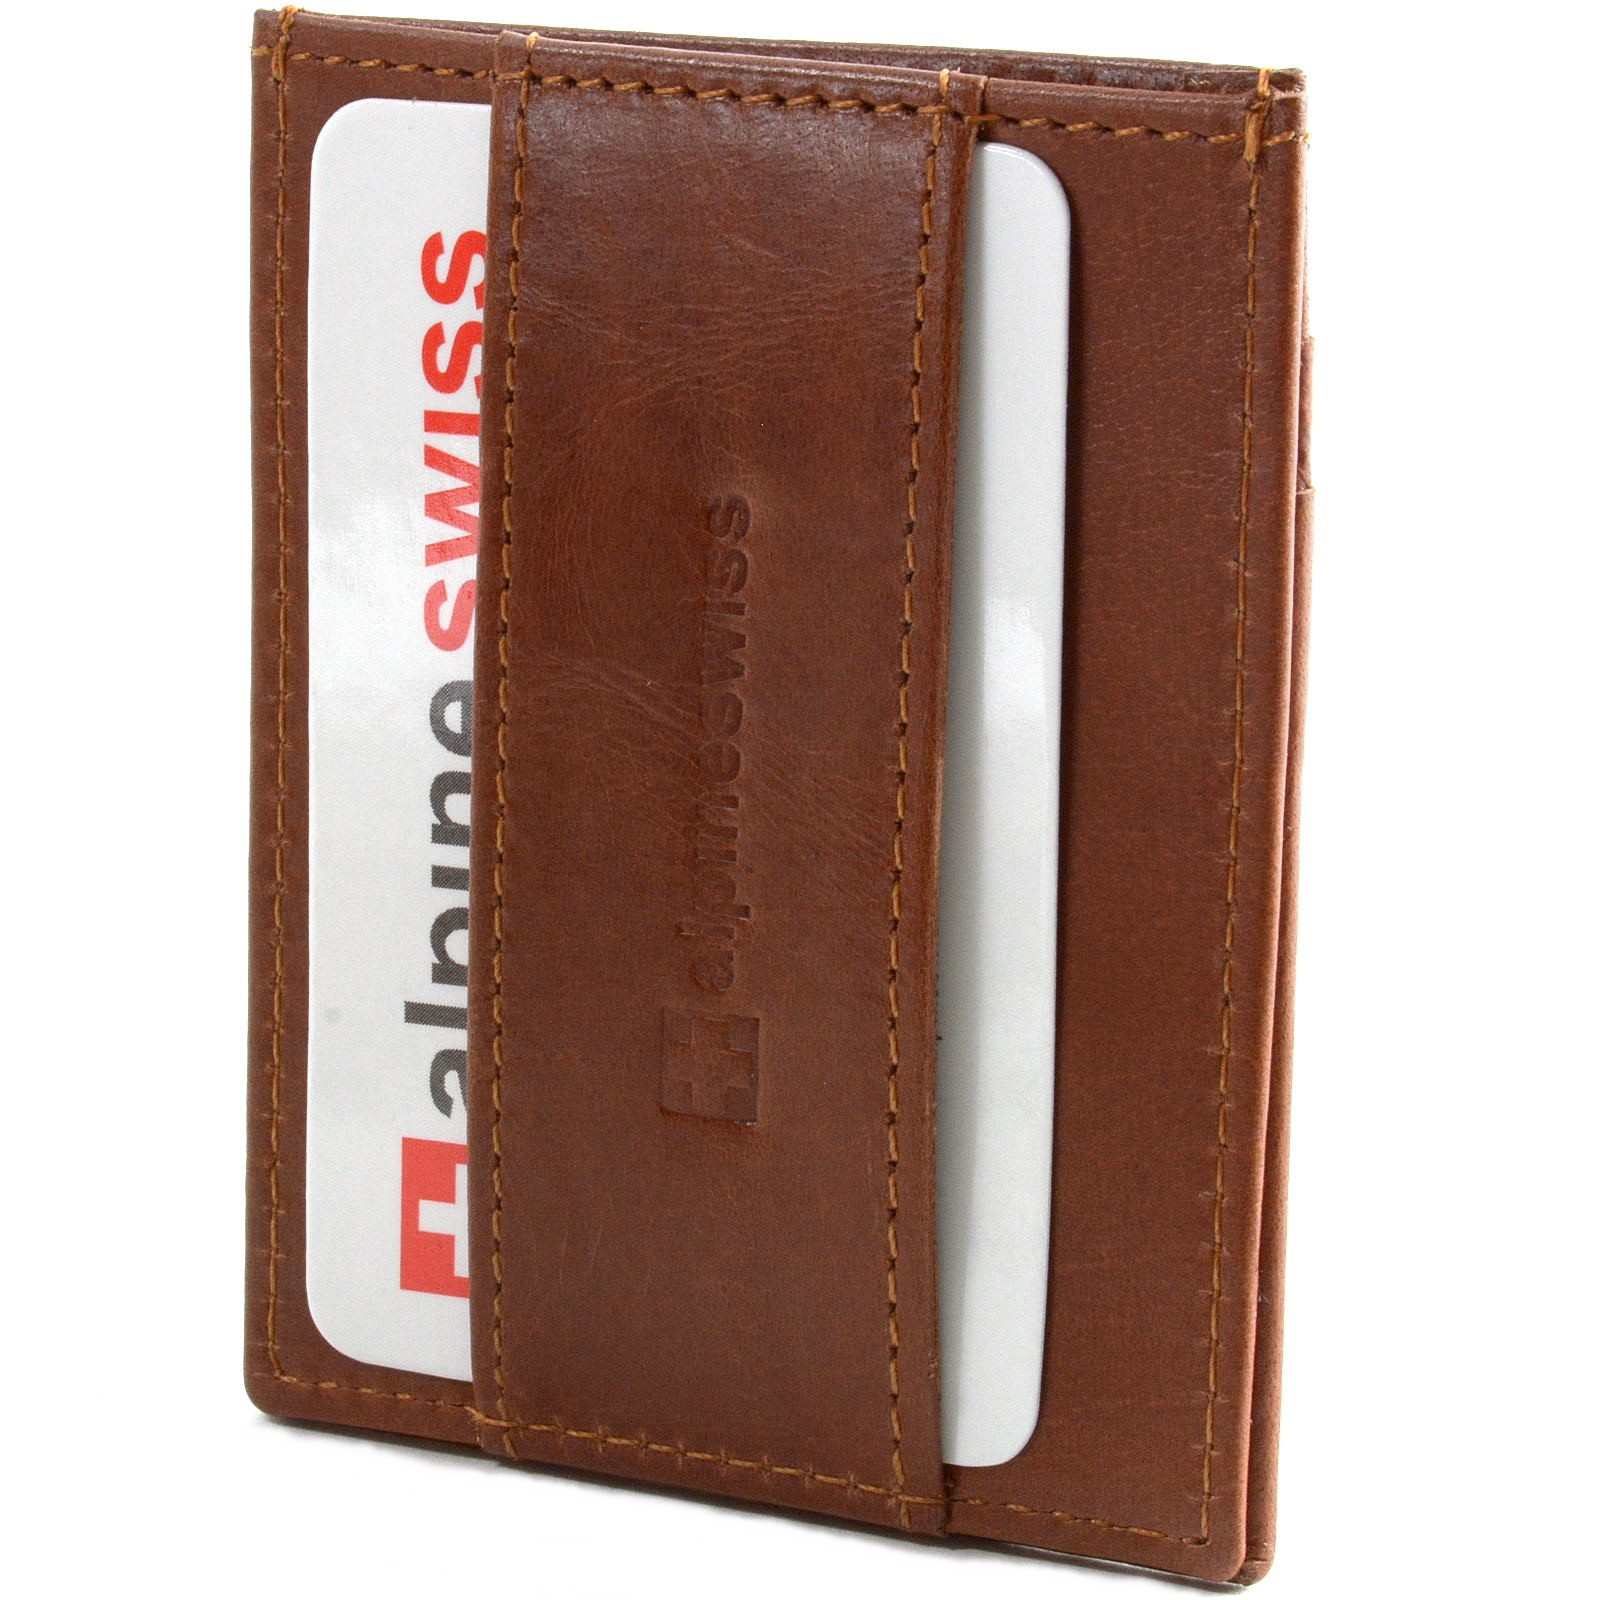 Alpine-Swiss-Mens-Minimalist-Front-Pocket-Wallet-Card-Case-Cash-Strap-Money-Clip